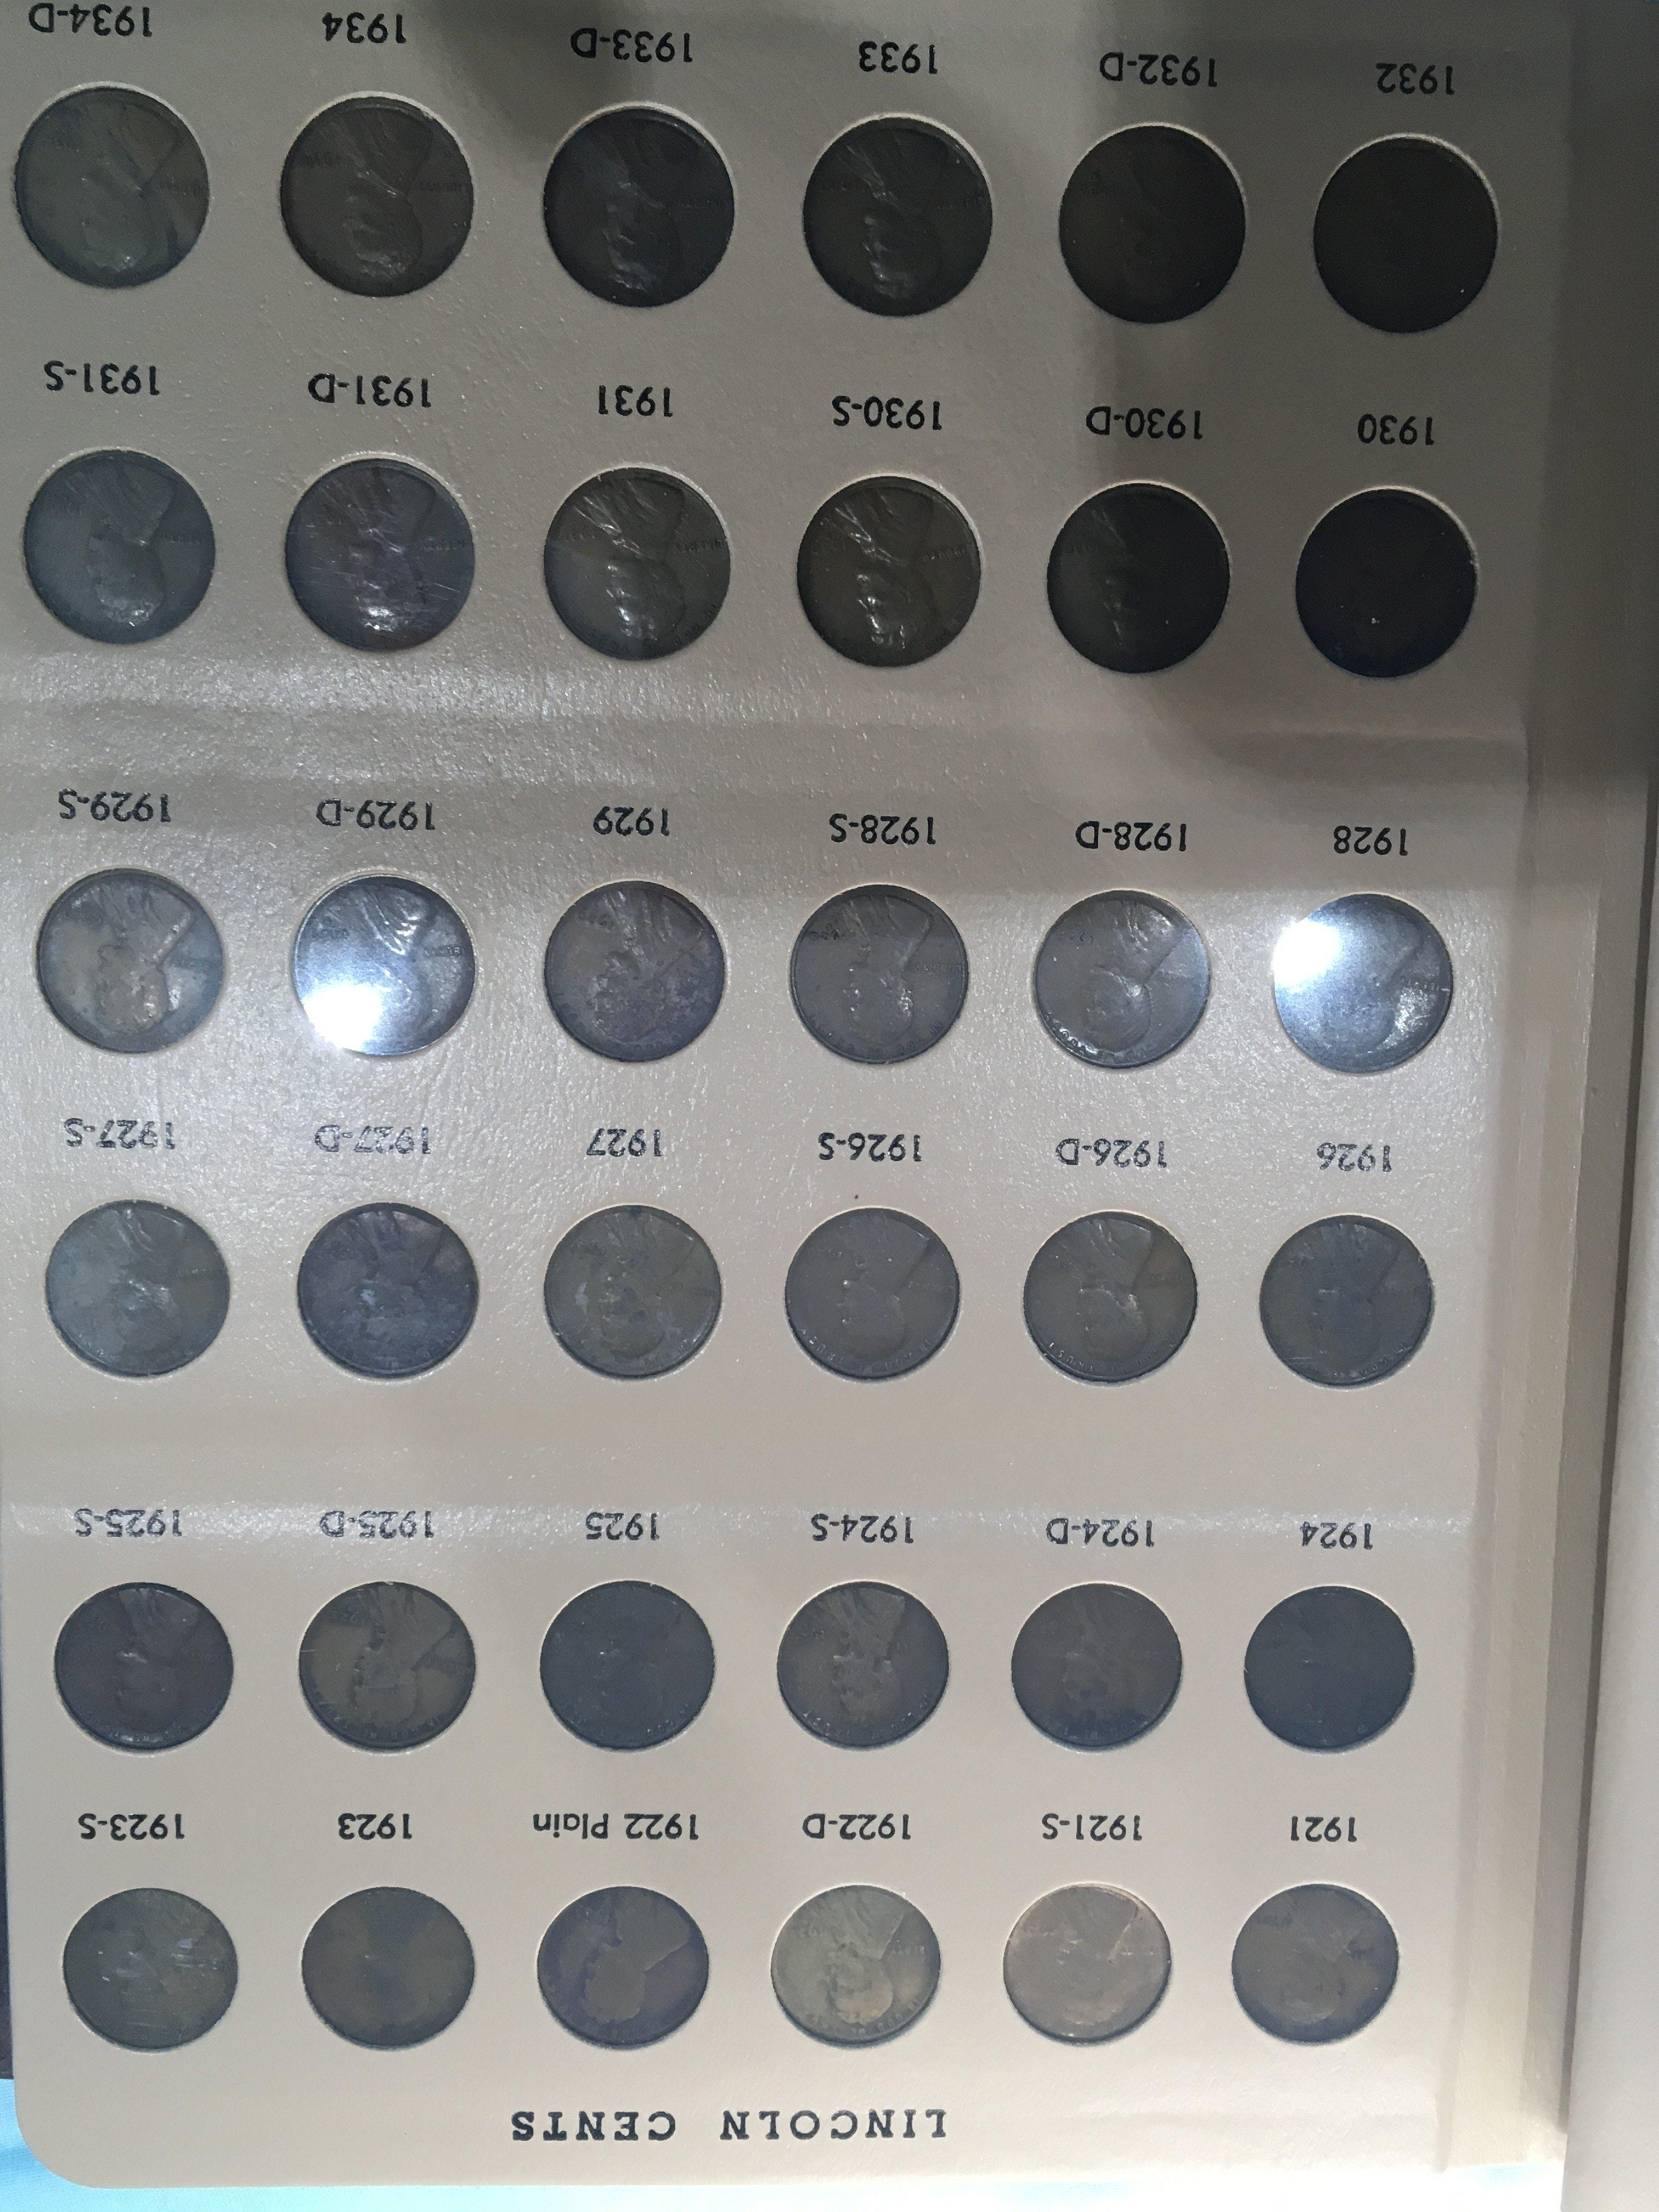 Lot 106 - An Album containing a complete set of Lincoln Cent